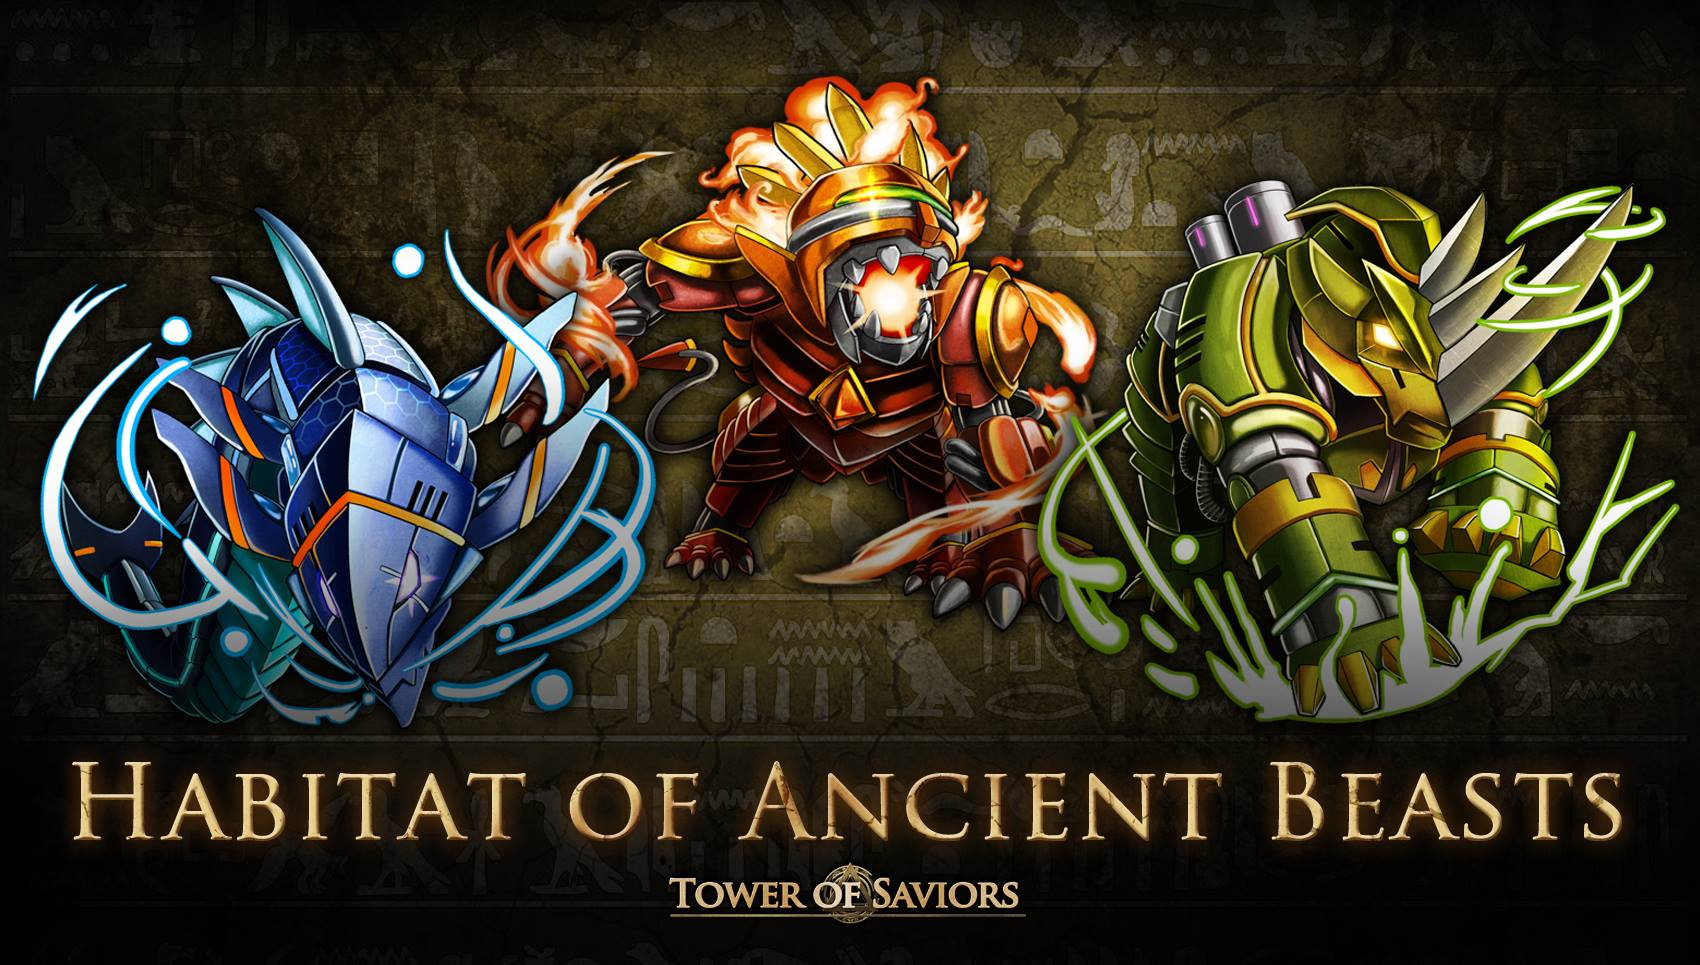 Habitat of Ancient Beasts - Tower of Saviors Wiki